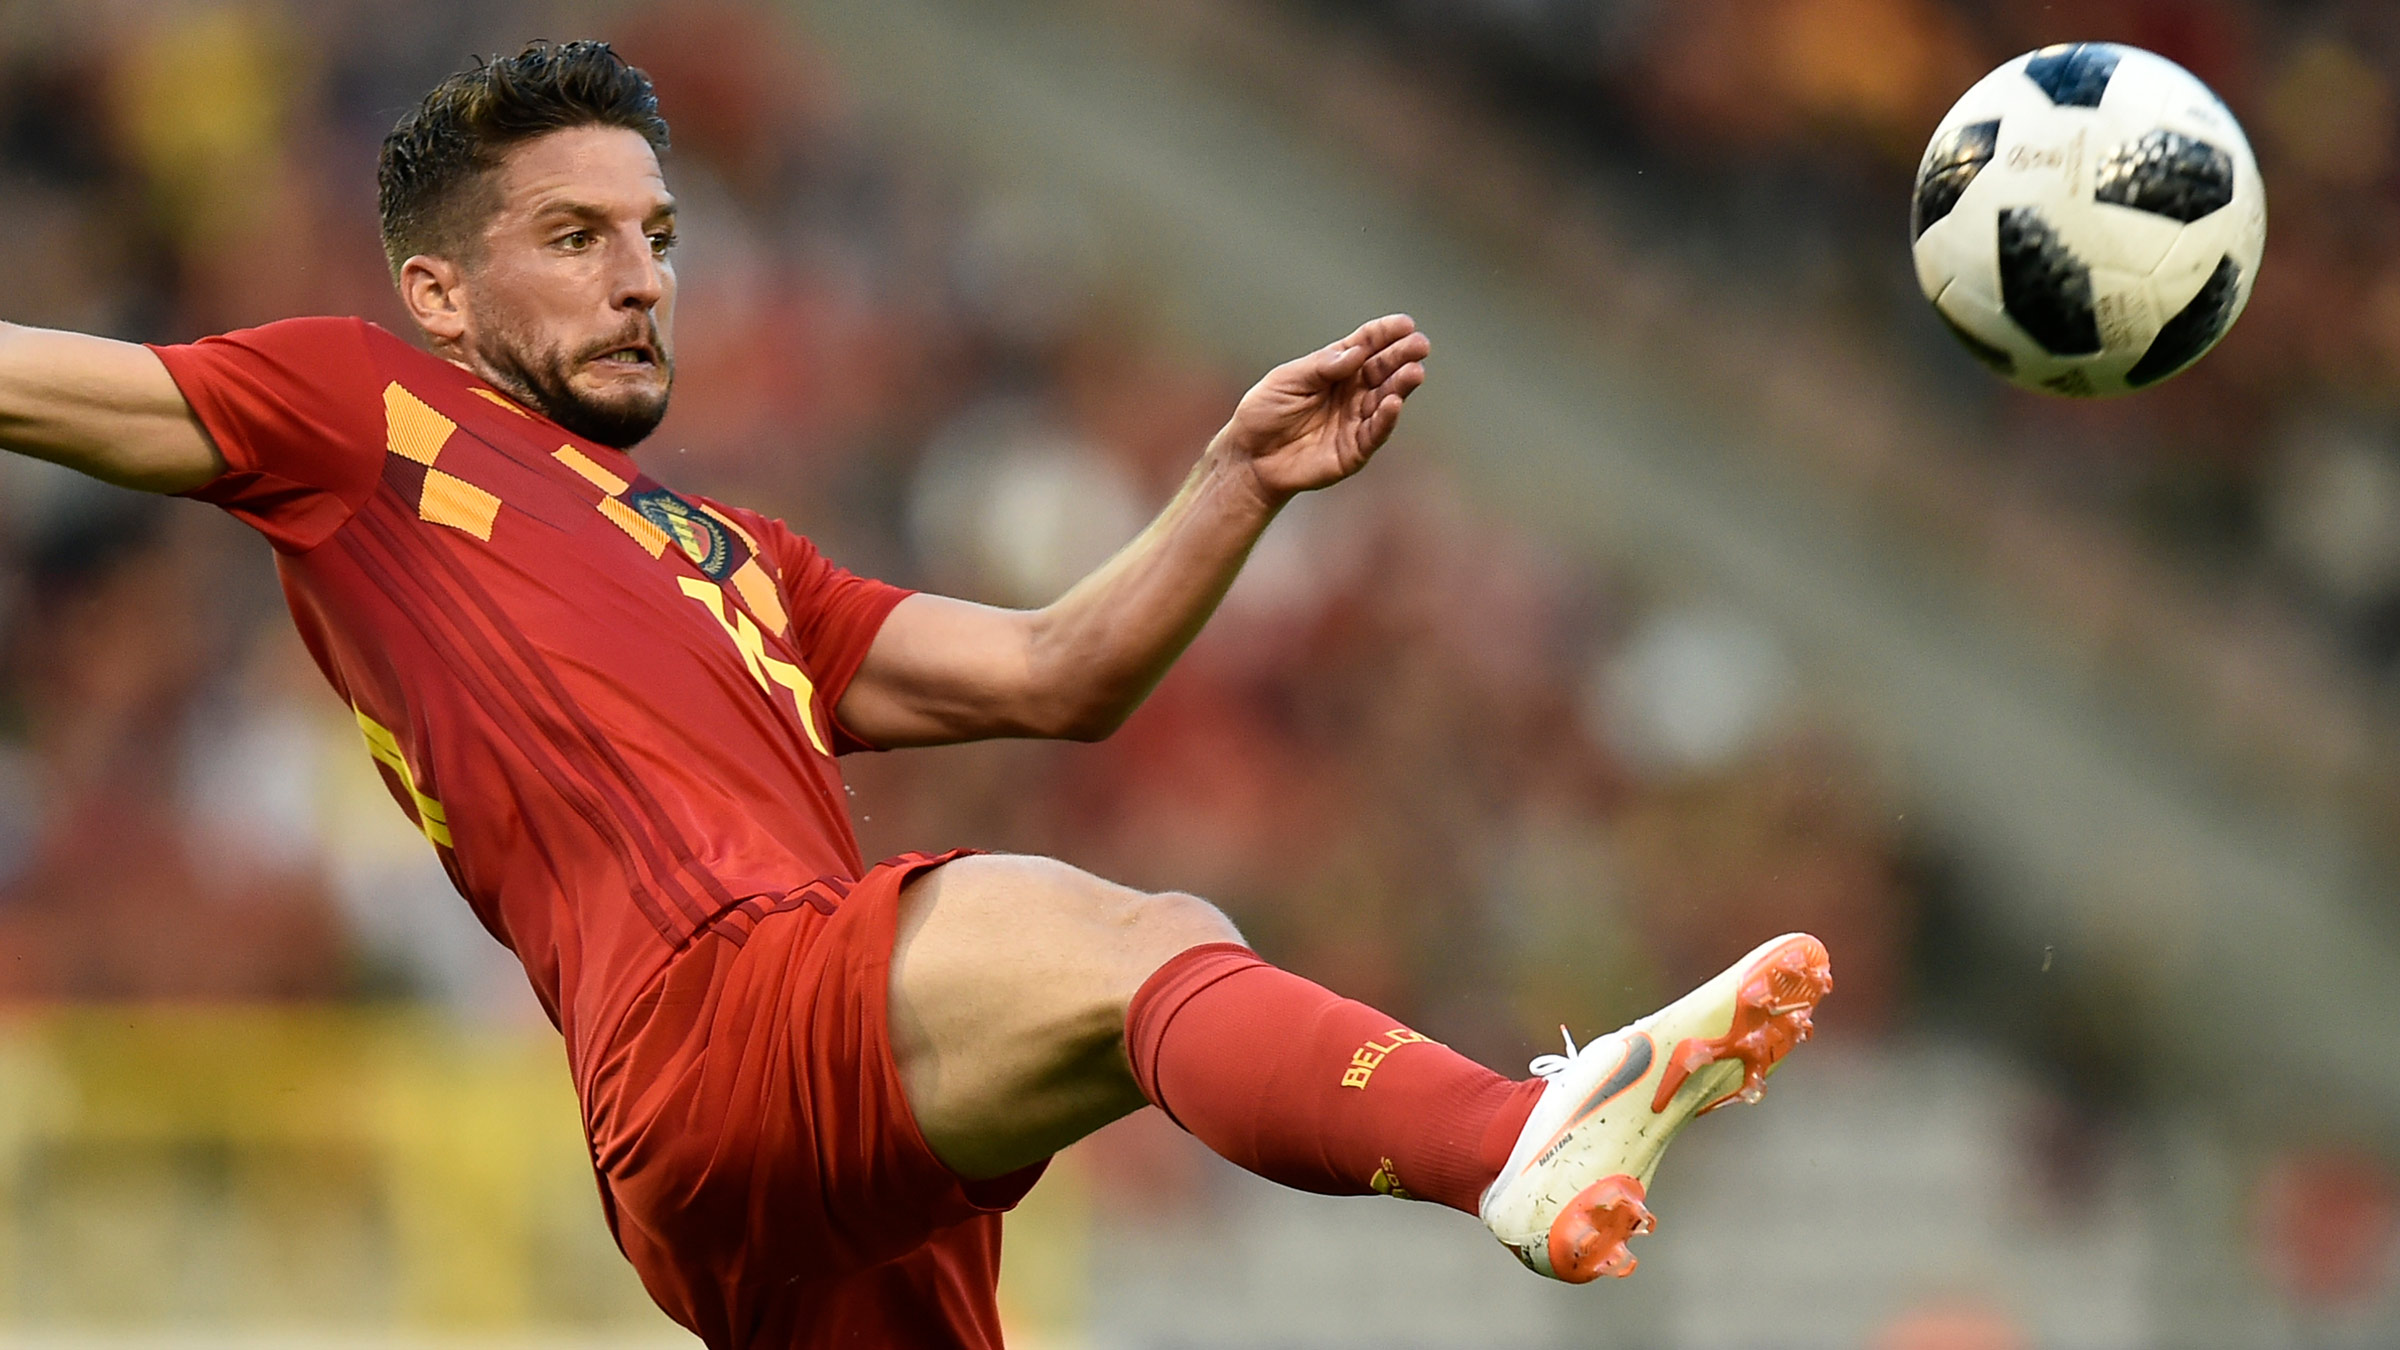 Dries mertens home